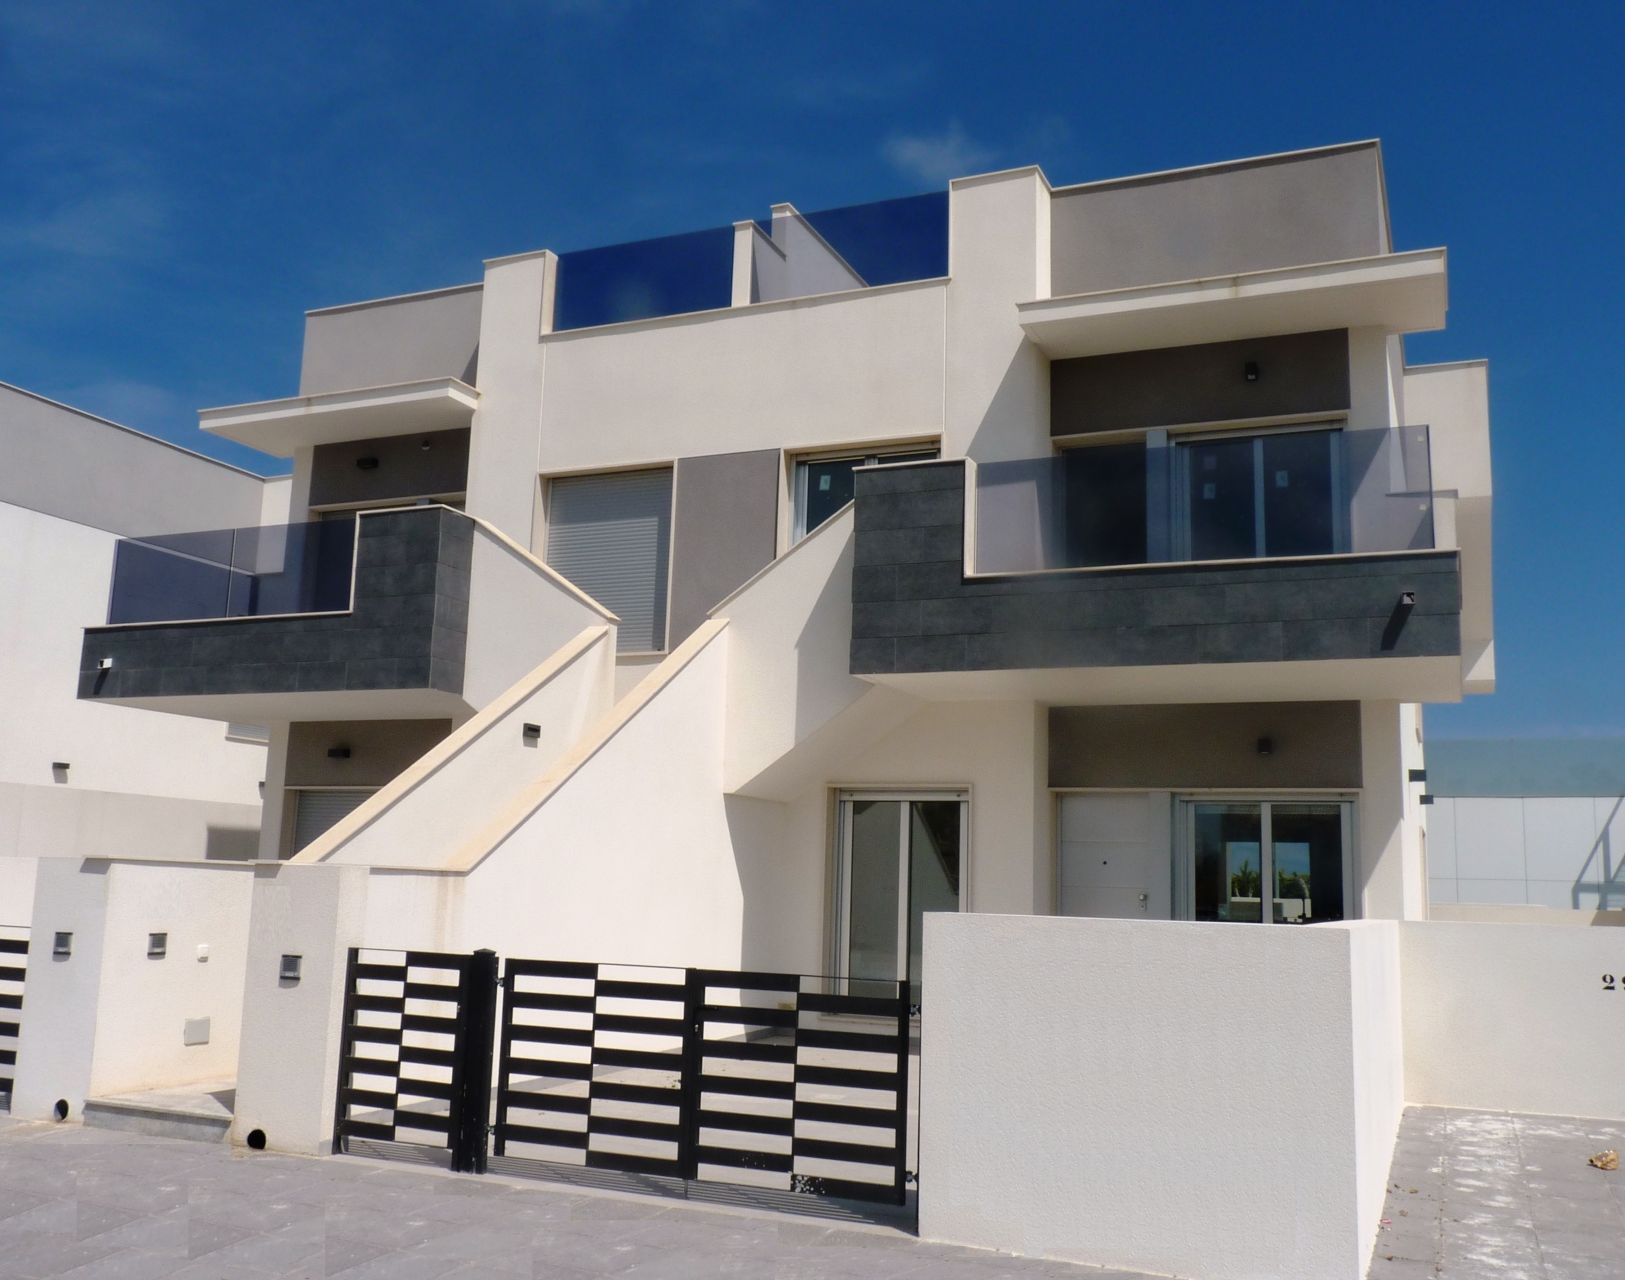 Apartments and duplex in Pilar de la Horadada 2